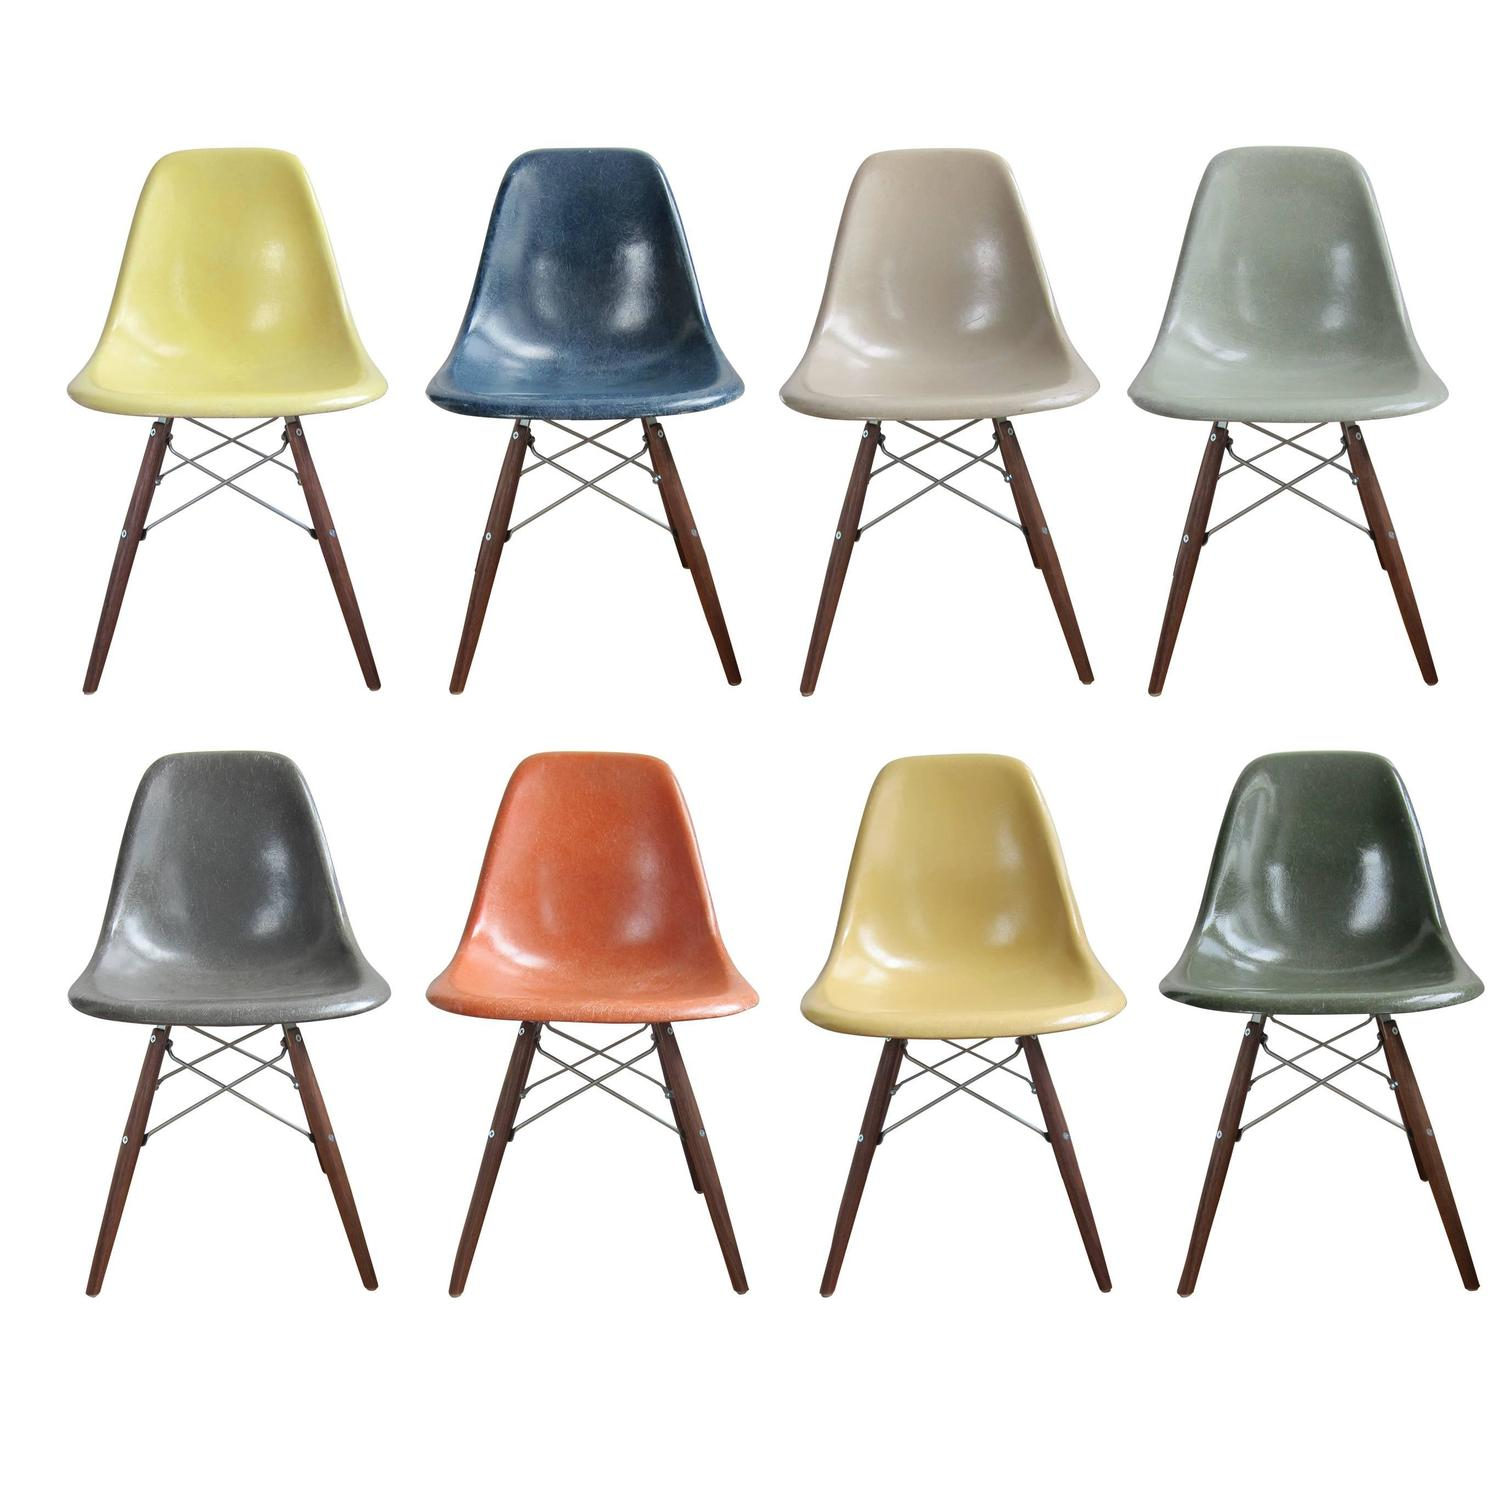 Eight Multicolored Herman Miller Eames Dining Chairs At 1stdibs